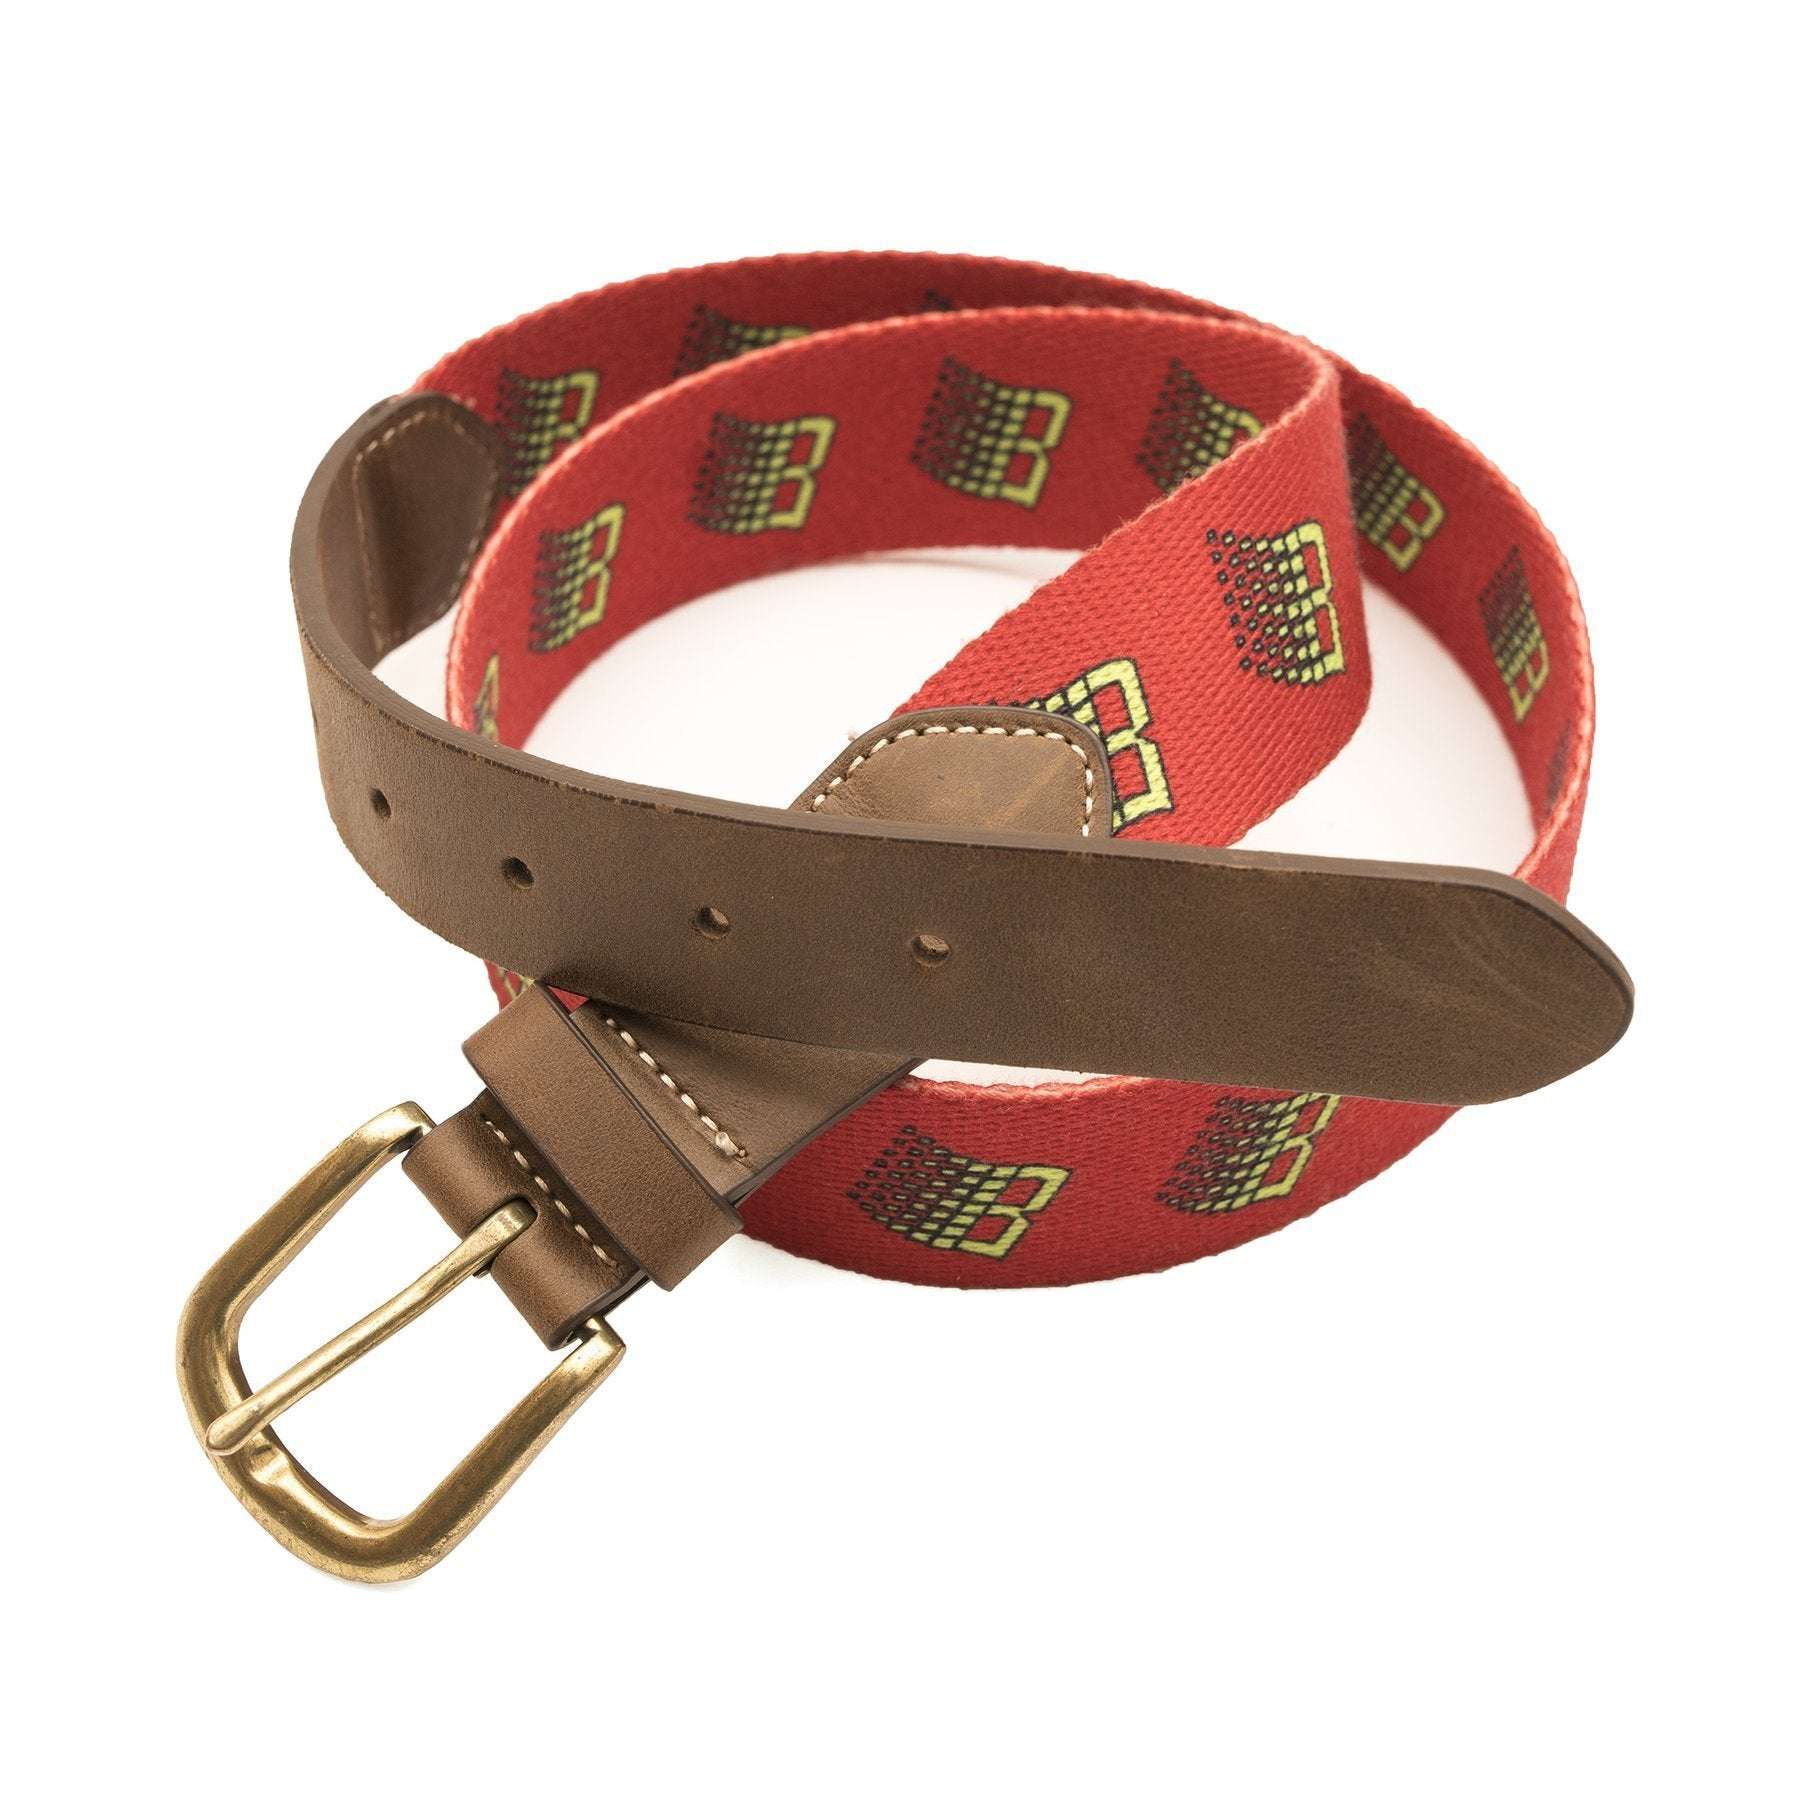 BRONZE B LOGO BELT